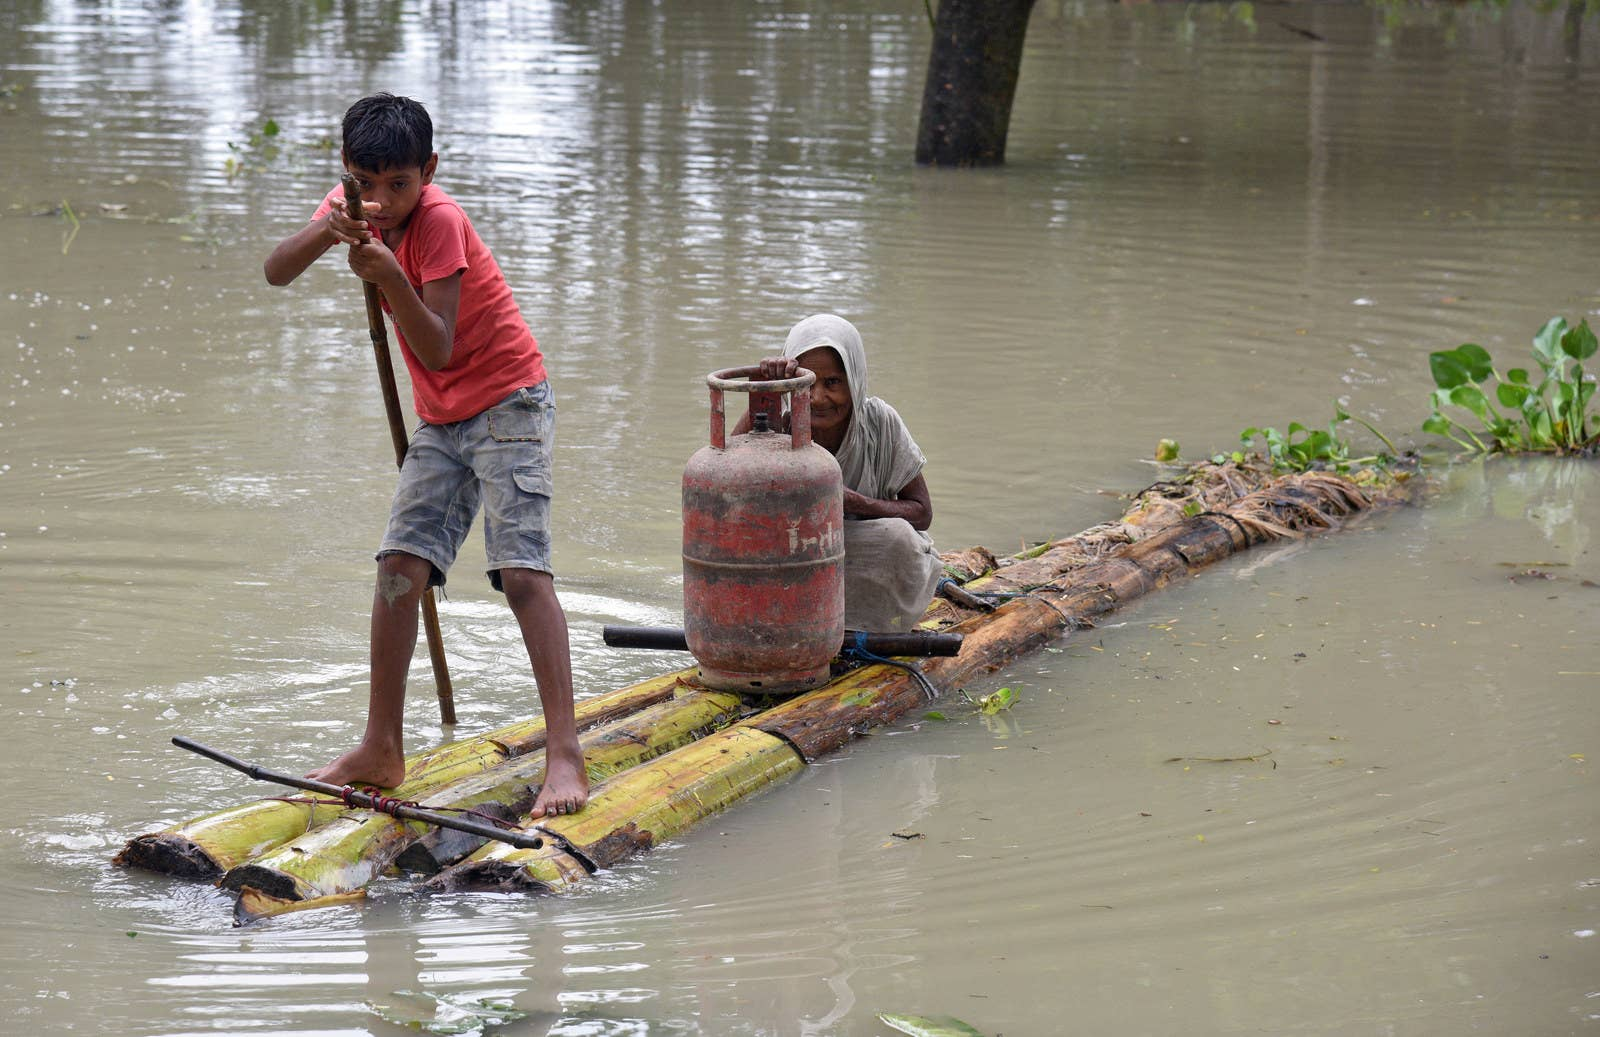 A boy rows a makeshift raft as he transports a woman and a cooking gas cylinder through the flood waters in Assam, India.